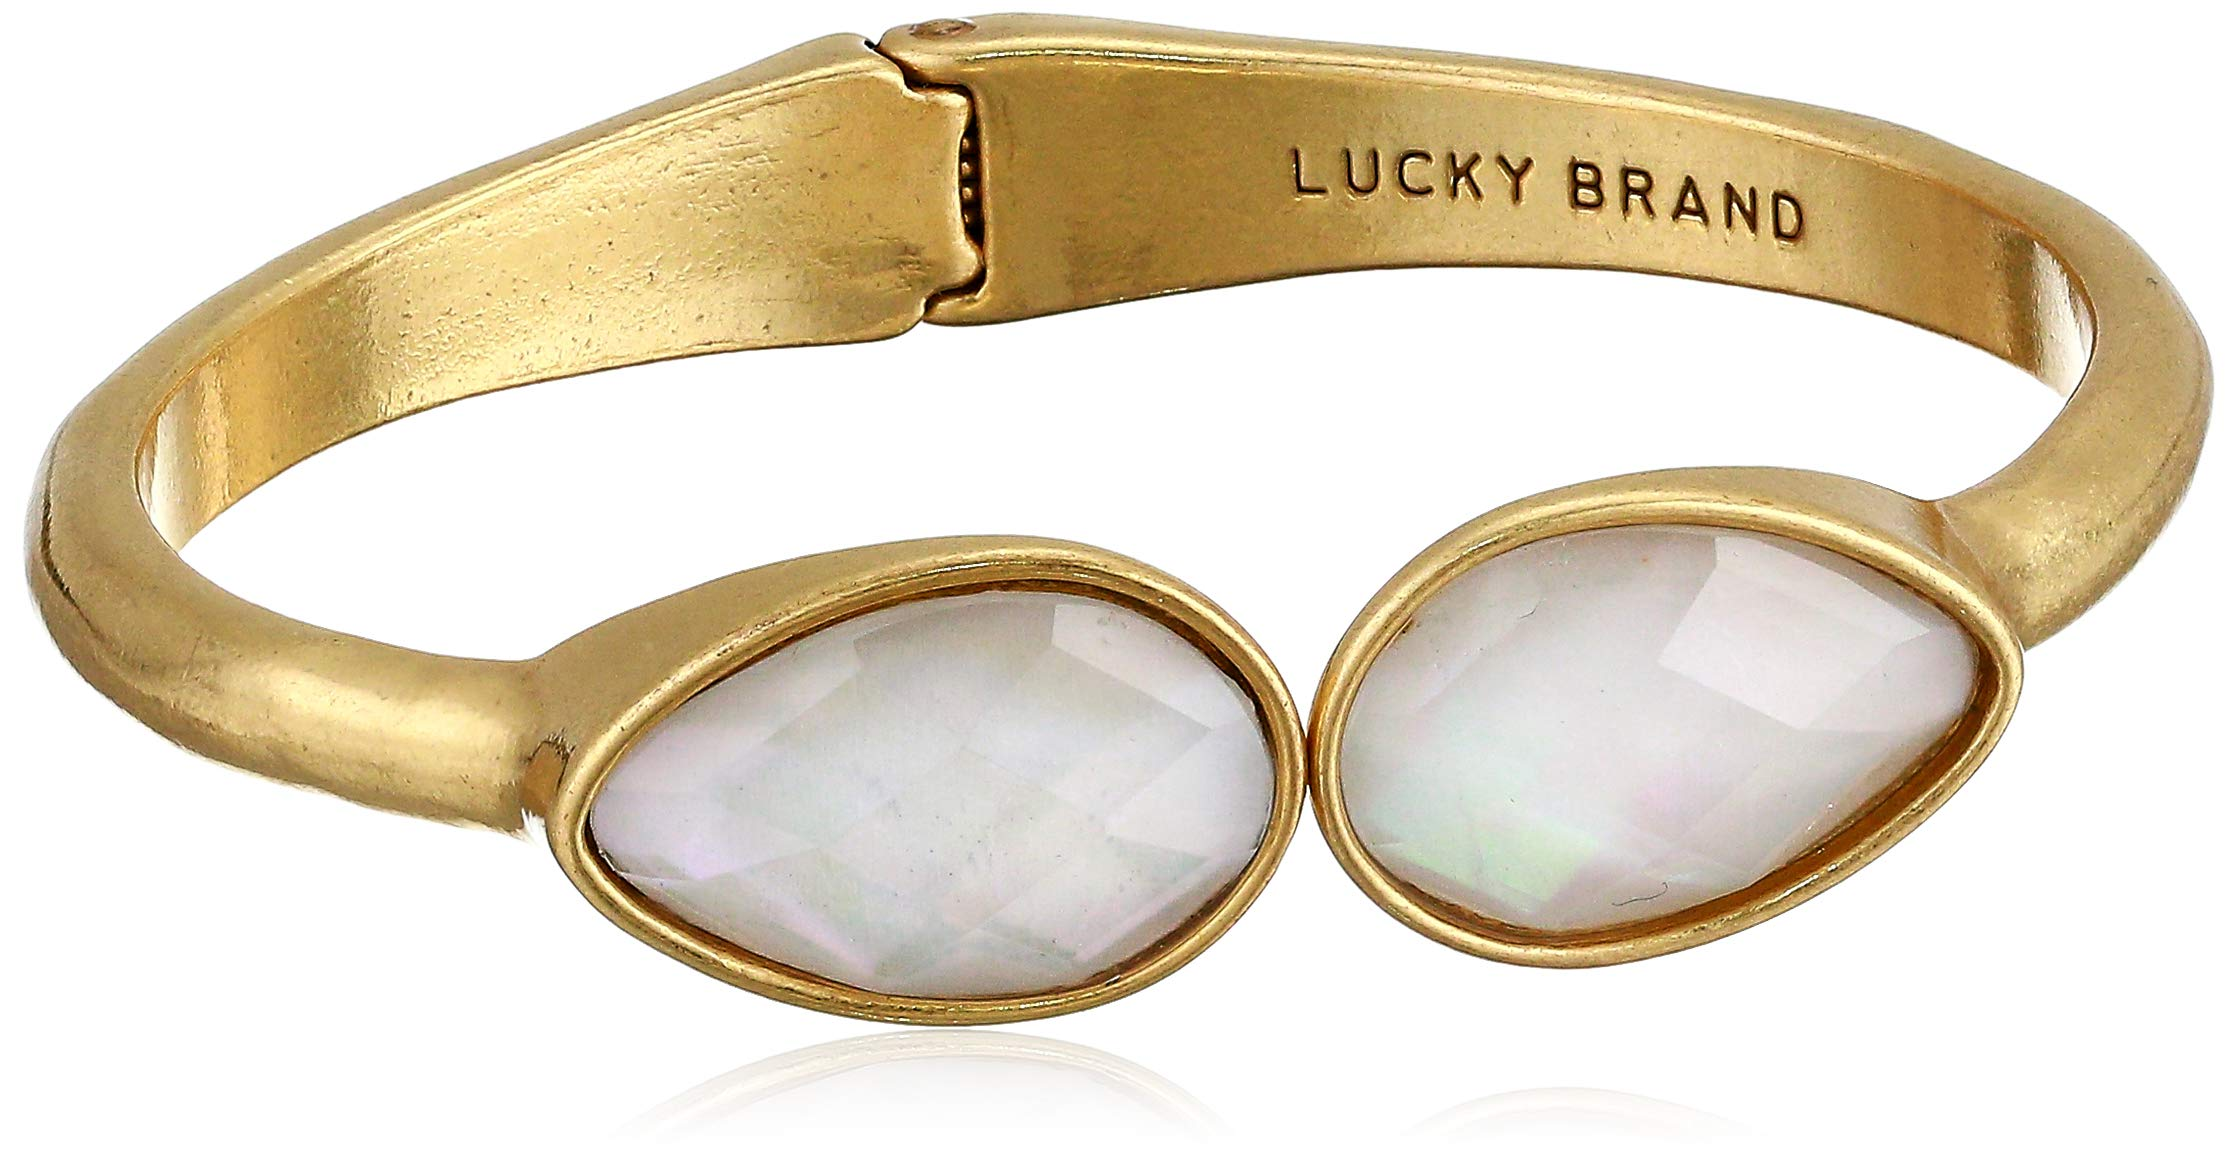 Lucky Brand Women's Double Stone Cuff Bracelet, Gold, One Size